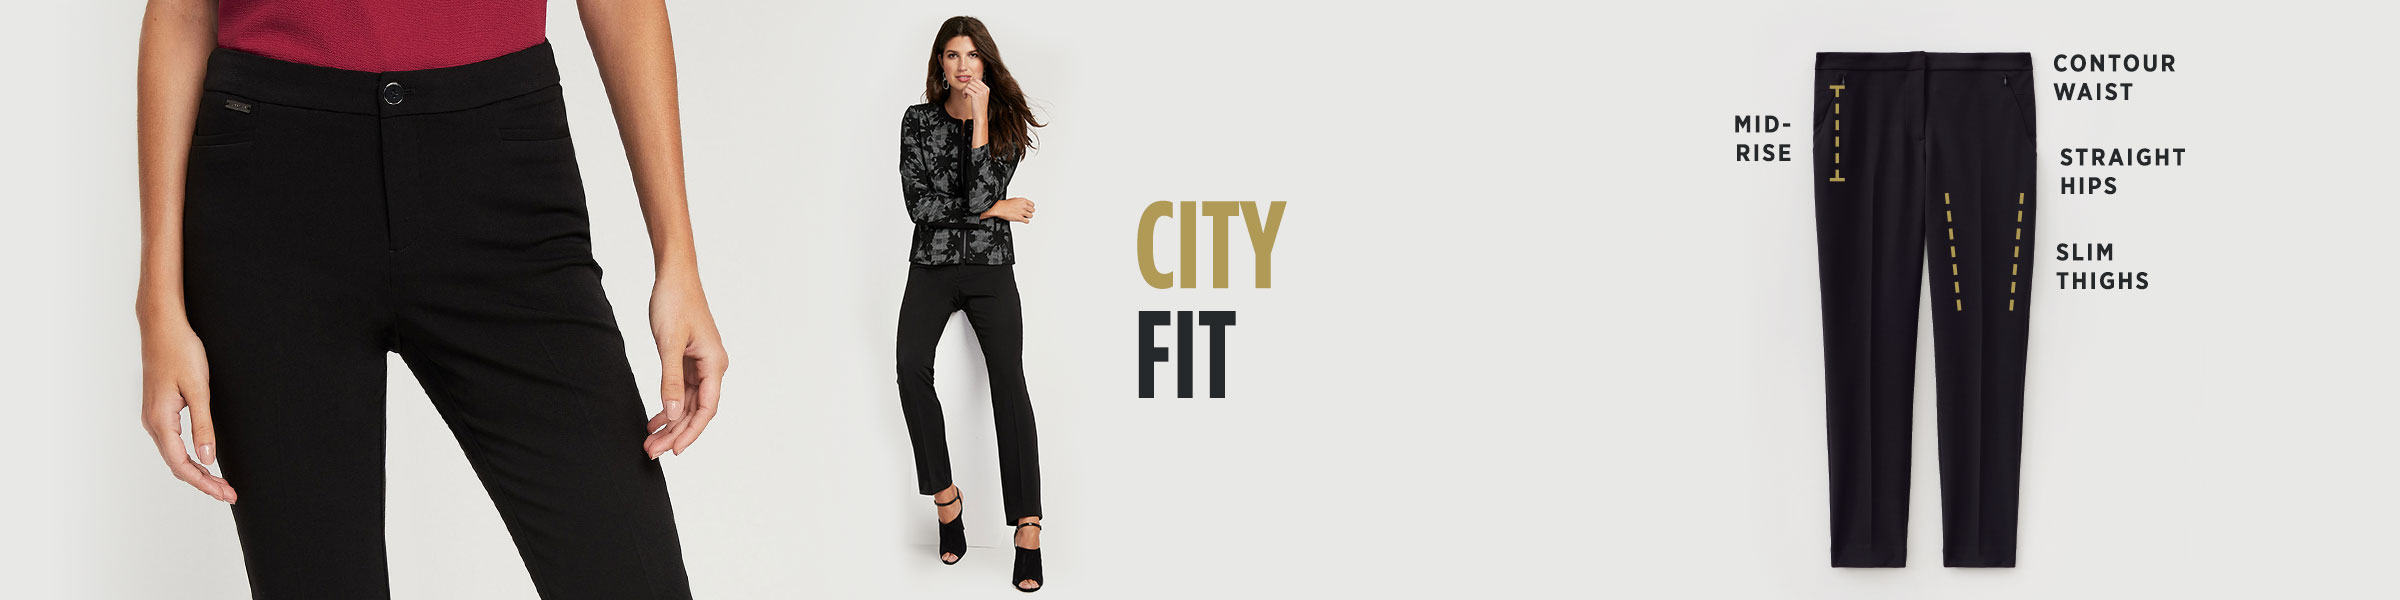 Laura - Clothing - Pants - City Fit